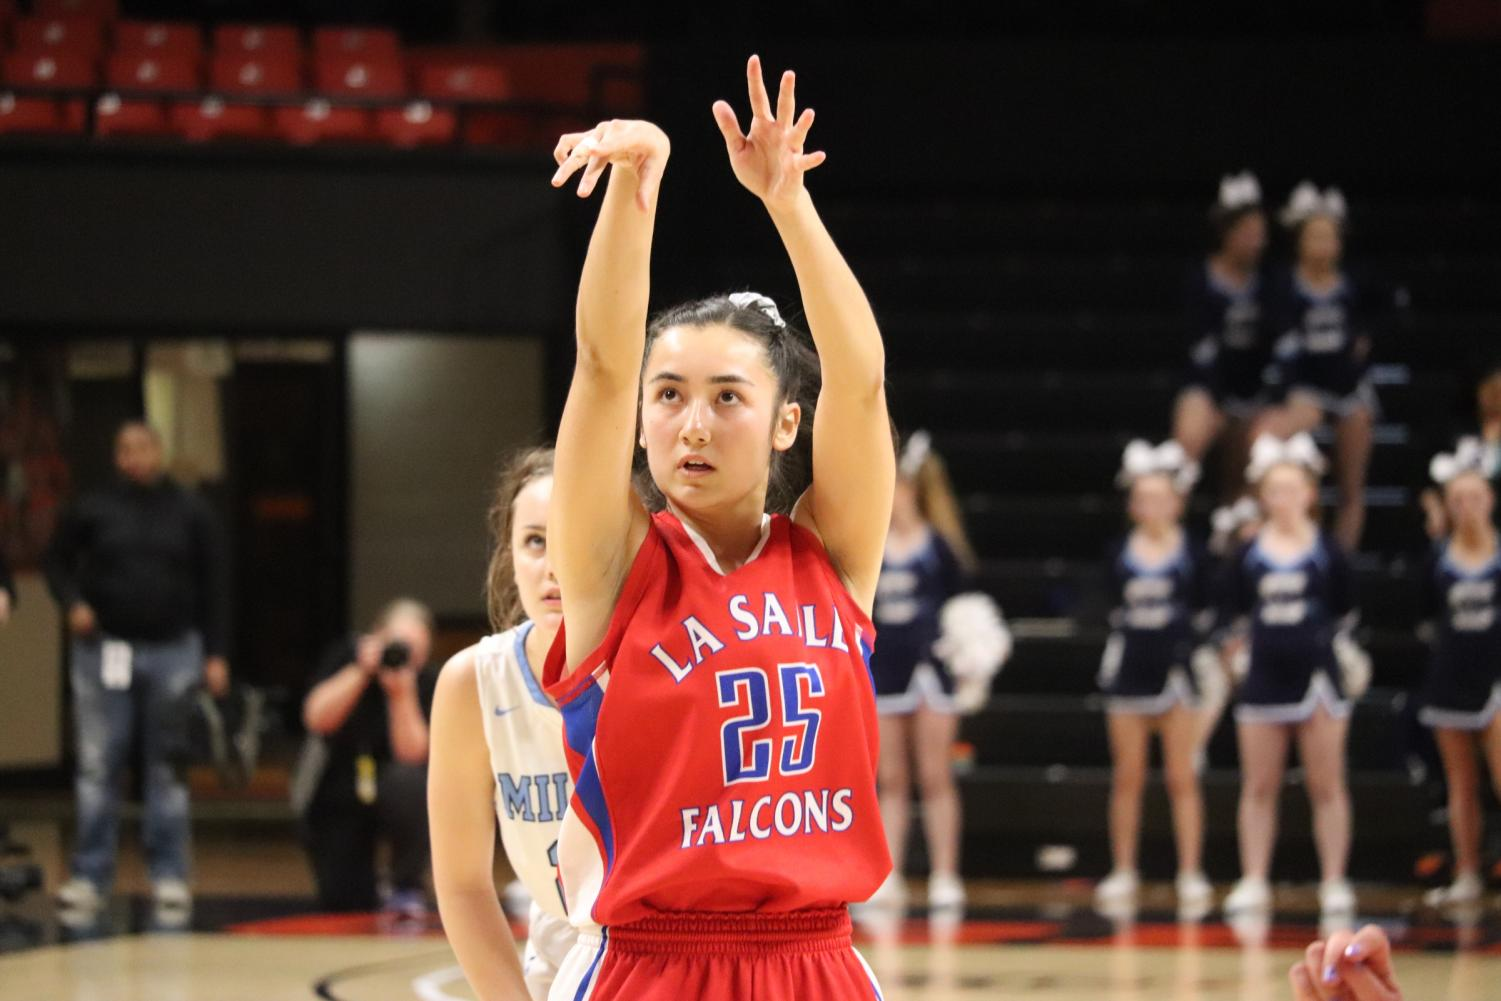 Miura+follows+up+after+Wedin+and+lands+her+free+throw.+